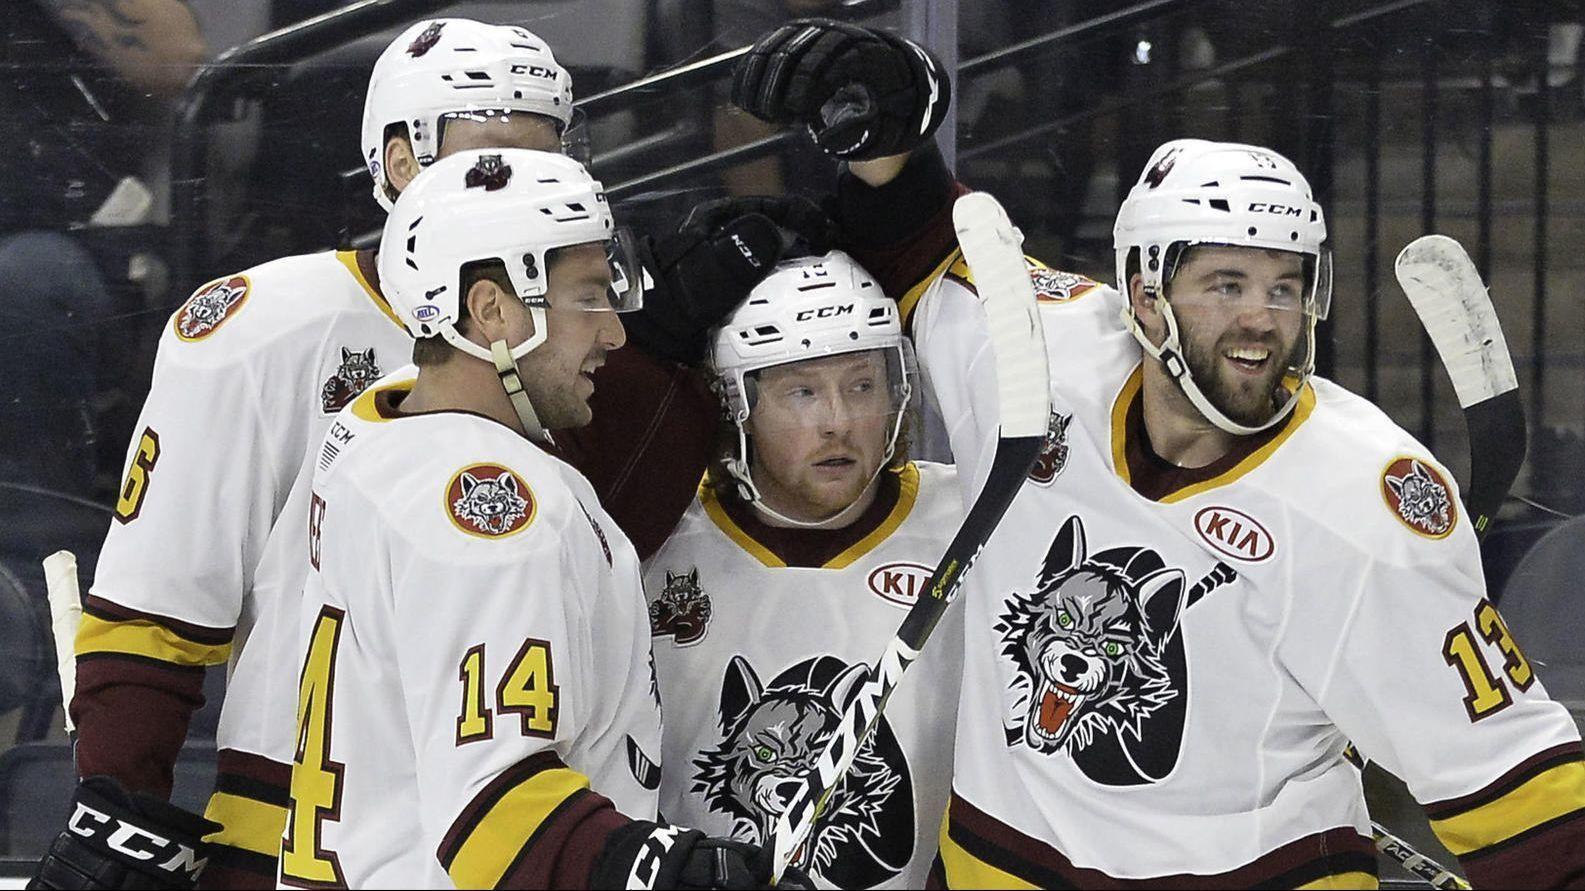 Wolves pull even in conference finals with 2-1 win in double overtime in Game 4